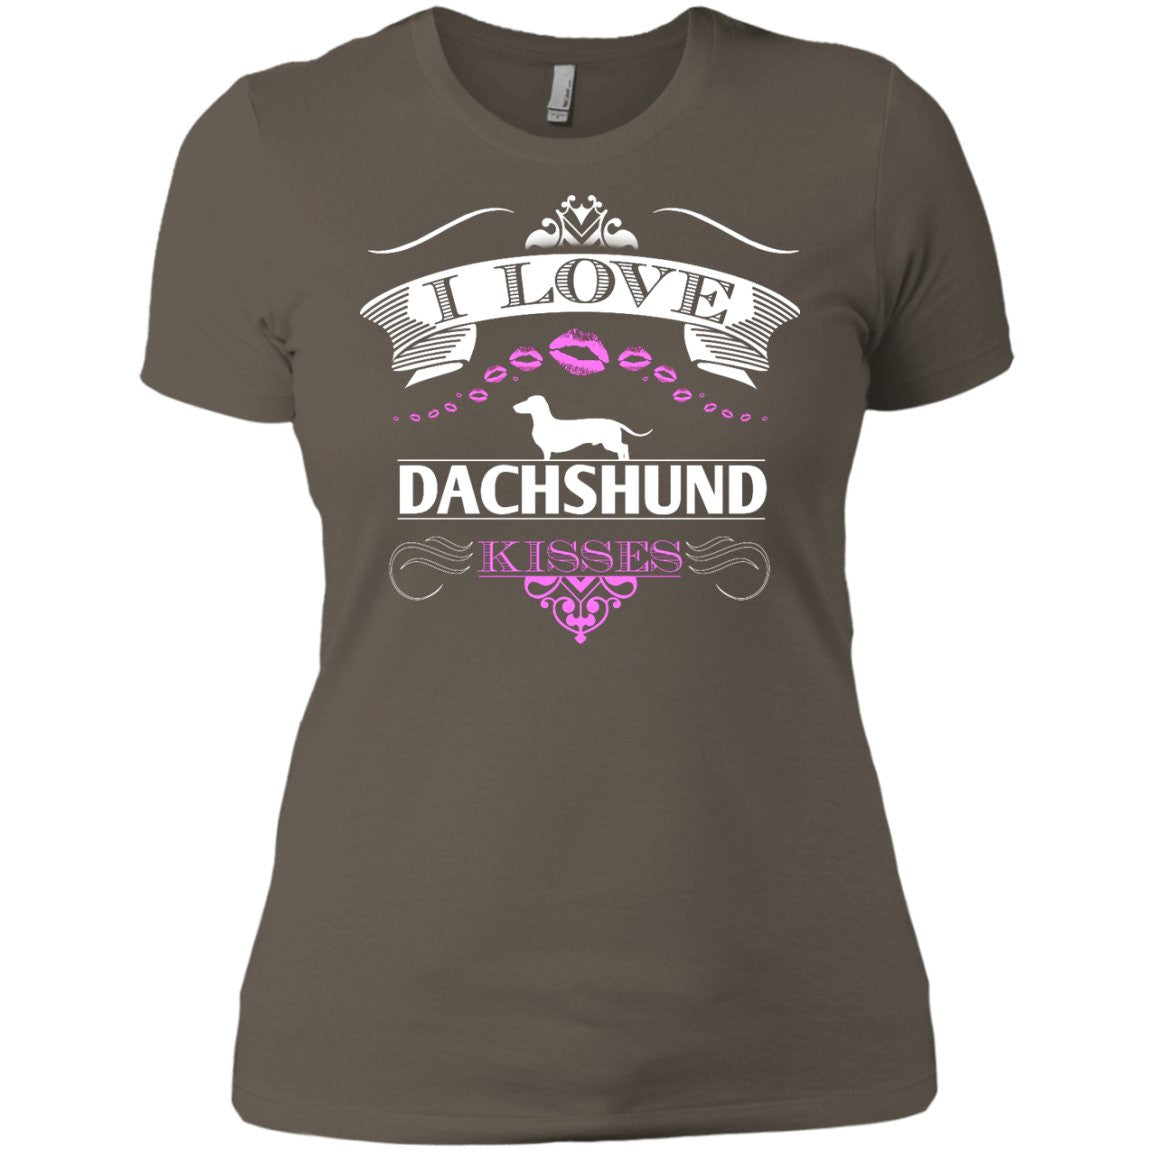 I LOVE DACHSHUND KISSES - FRONT DESIGN -  Next Level Ladies' Boyfriend Tee